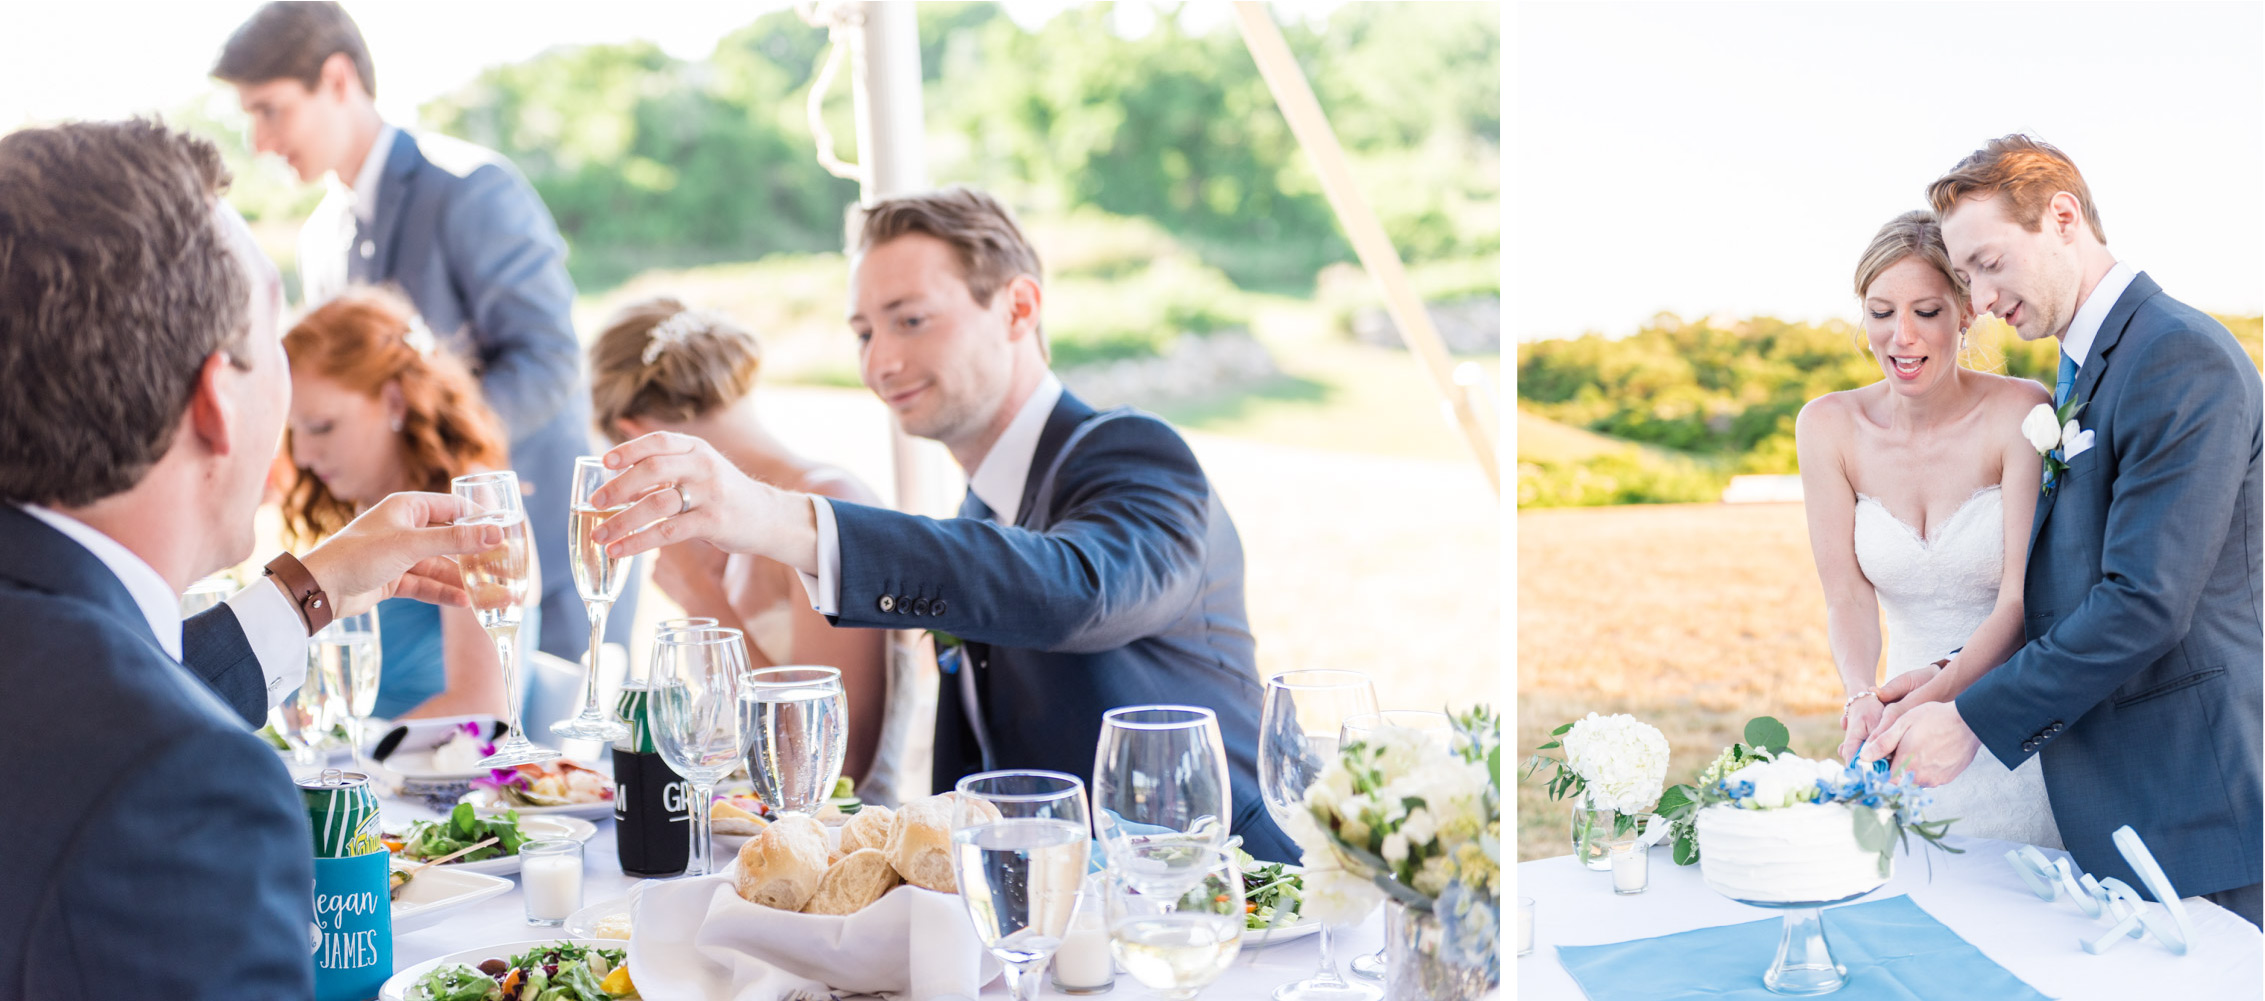 Block Island New Shoreham Rhode Island Coastal Classic Summer Wedding - Lorna Stell Photo - Boston, North Shore, Massachusetts and New England Wedding and Portrait Photographer for the Openhearted